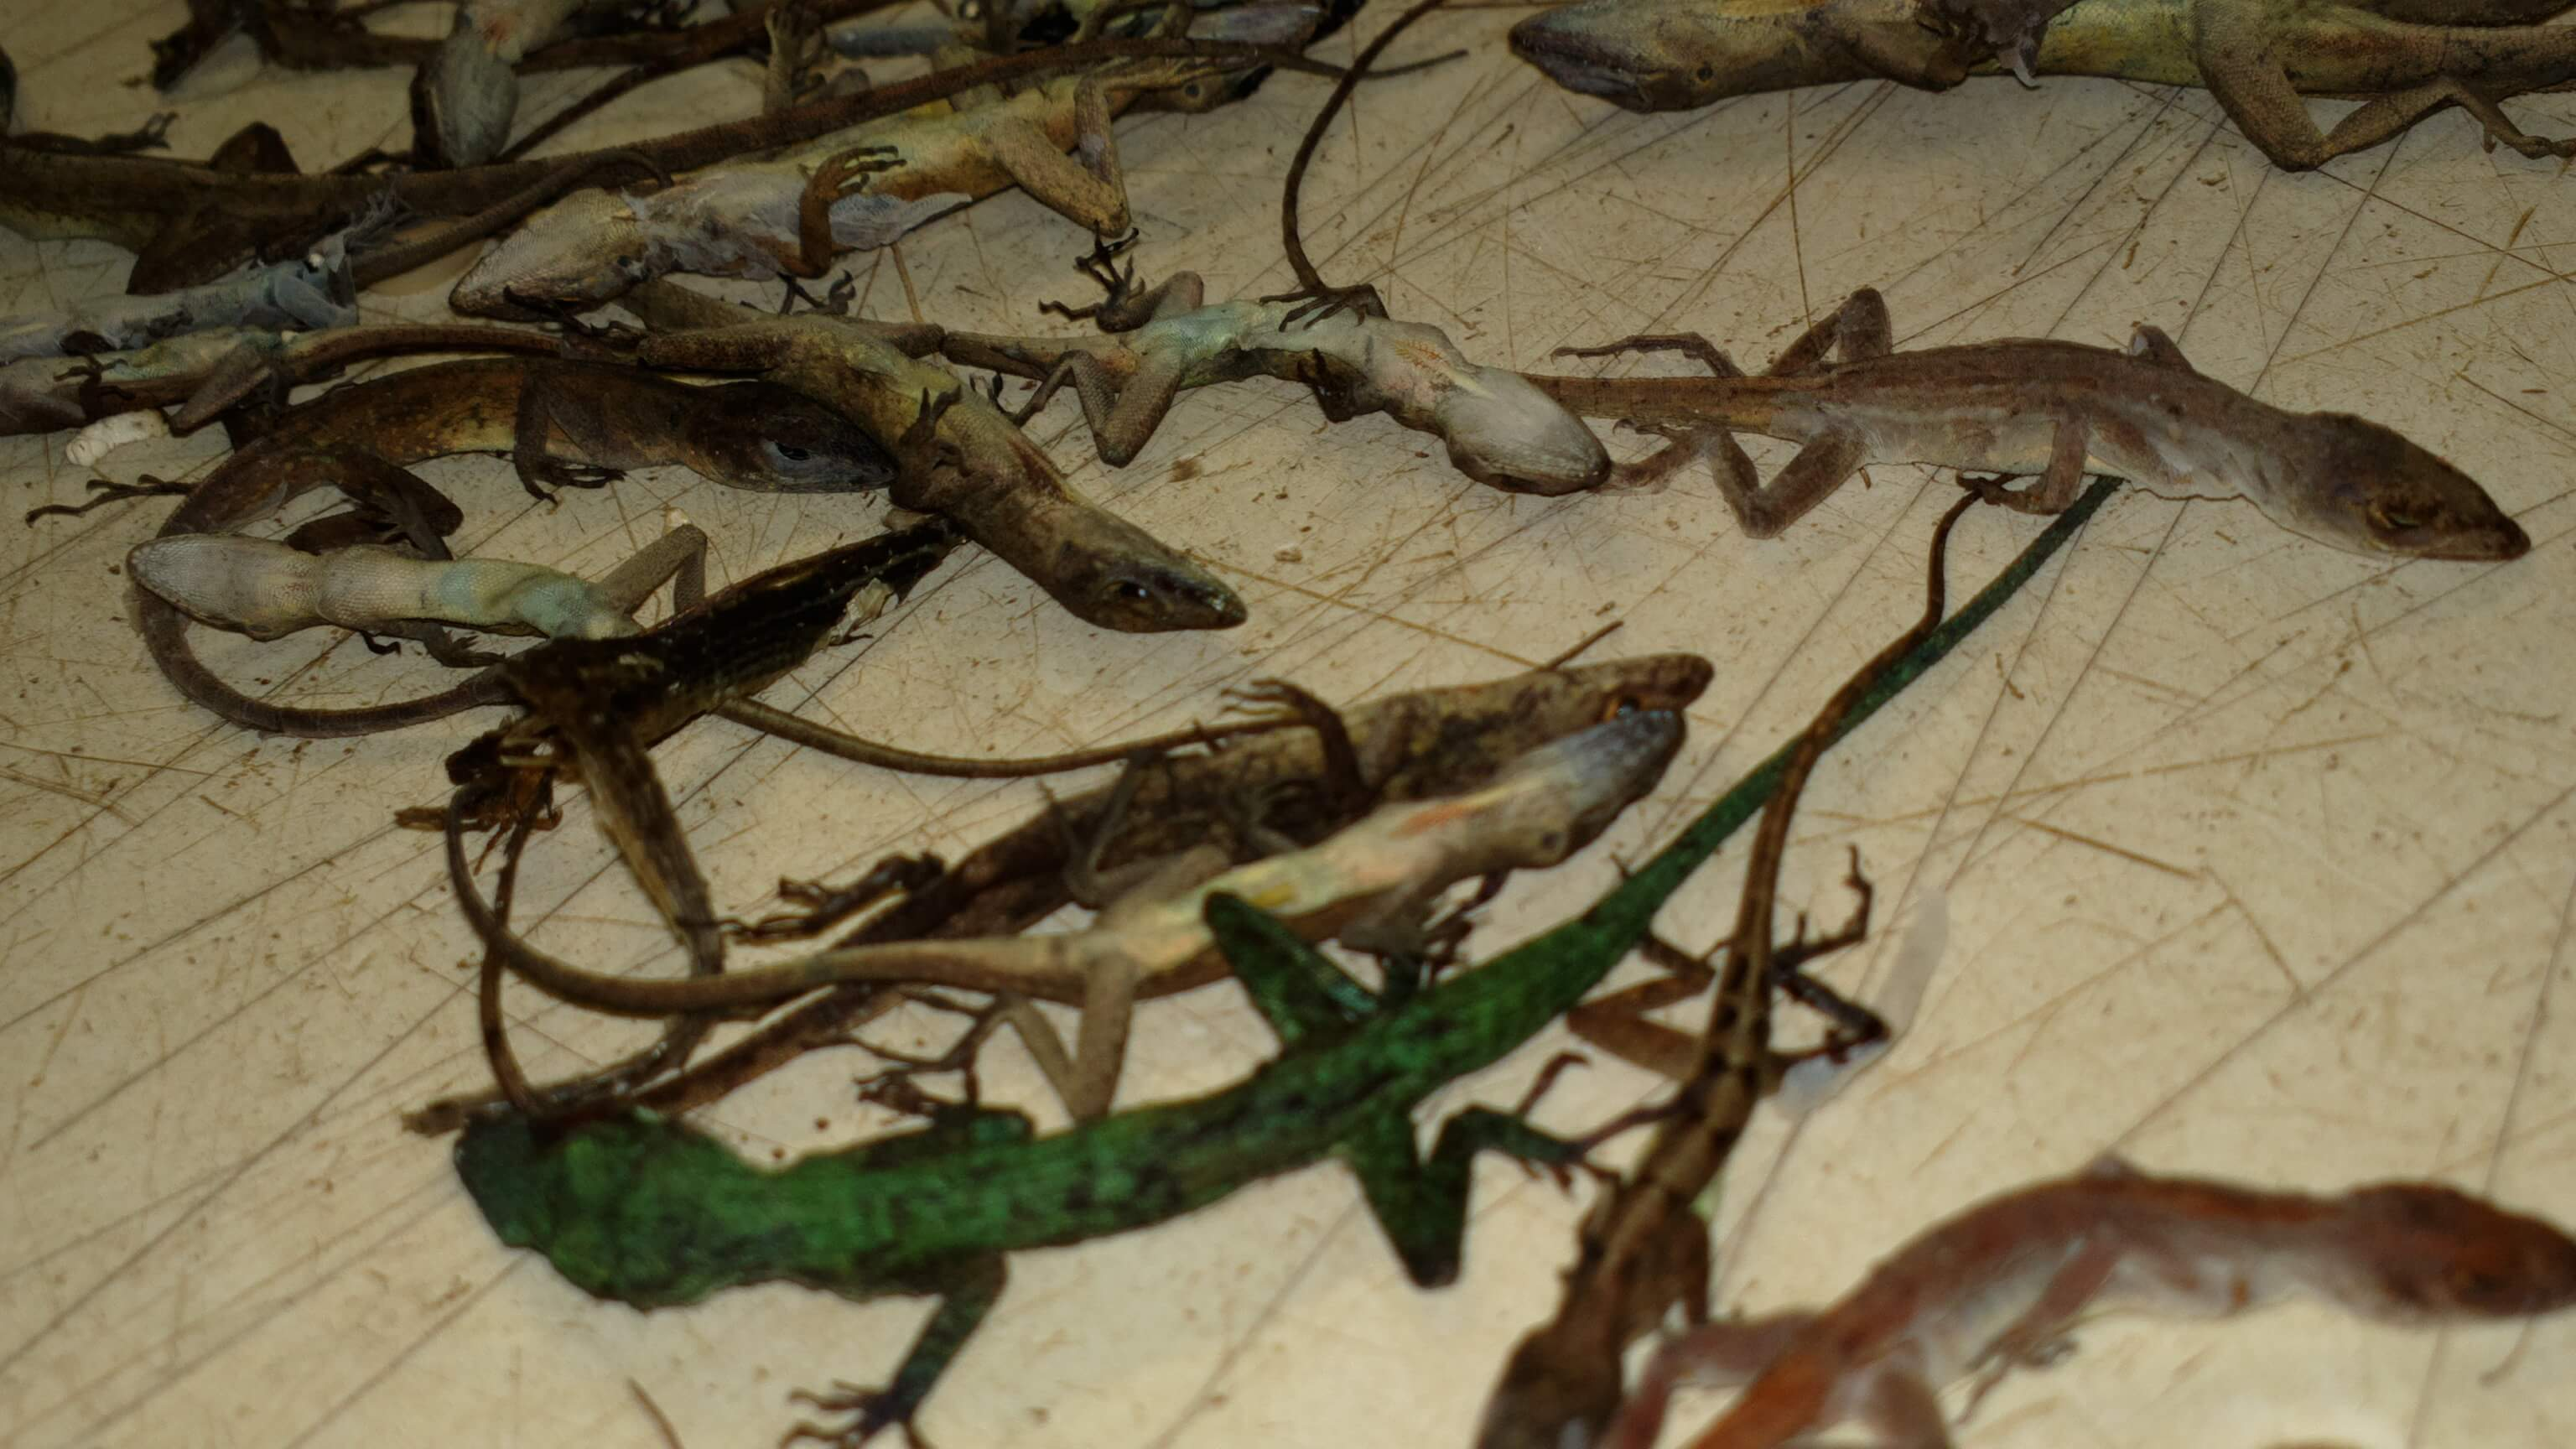 Reptiles Suffer Left To Die At Another Massive Petsmart